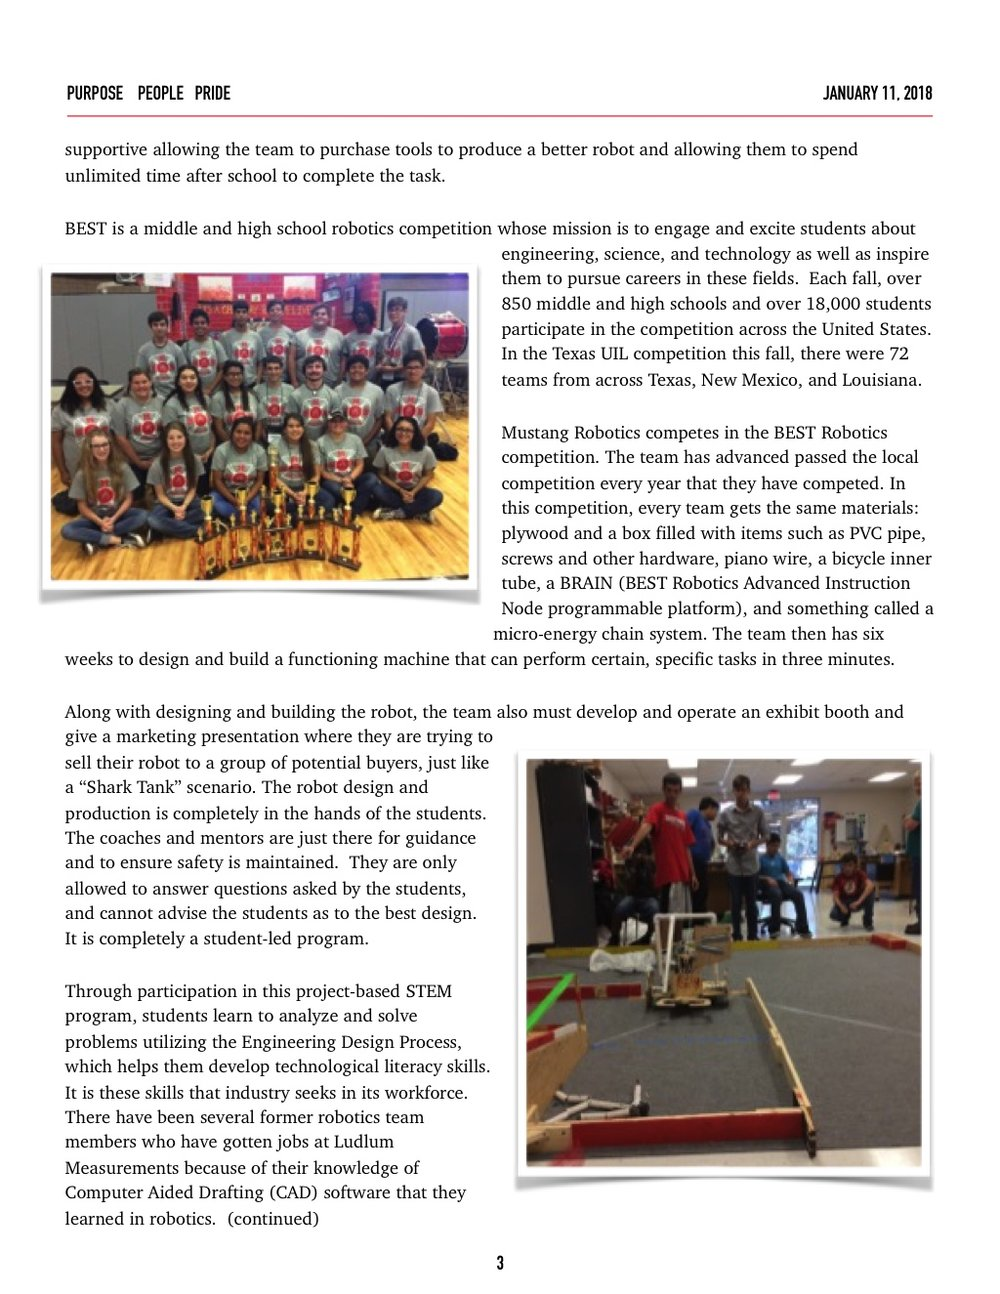 SISD Newsletter January 2018 copy-3.jpg